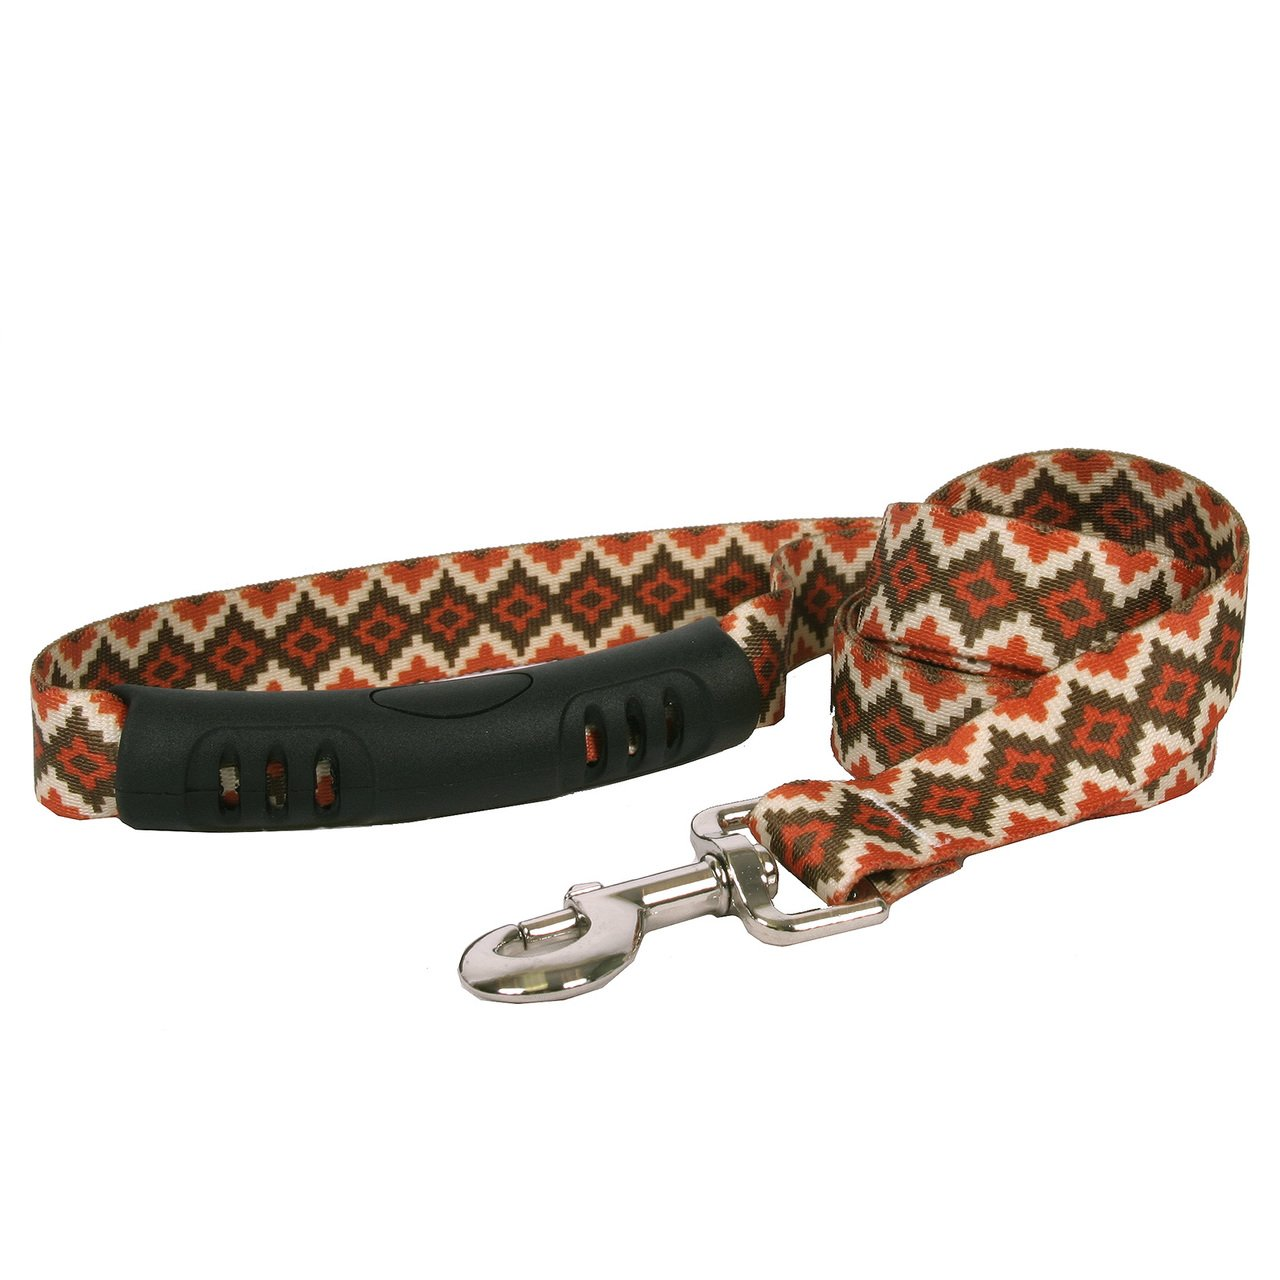 Yellow Dog Design Aztec Sand Ez-Grip Dog Leash with Comfort Handle 1'' Wide and 5' (60'') Long, Large